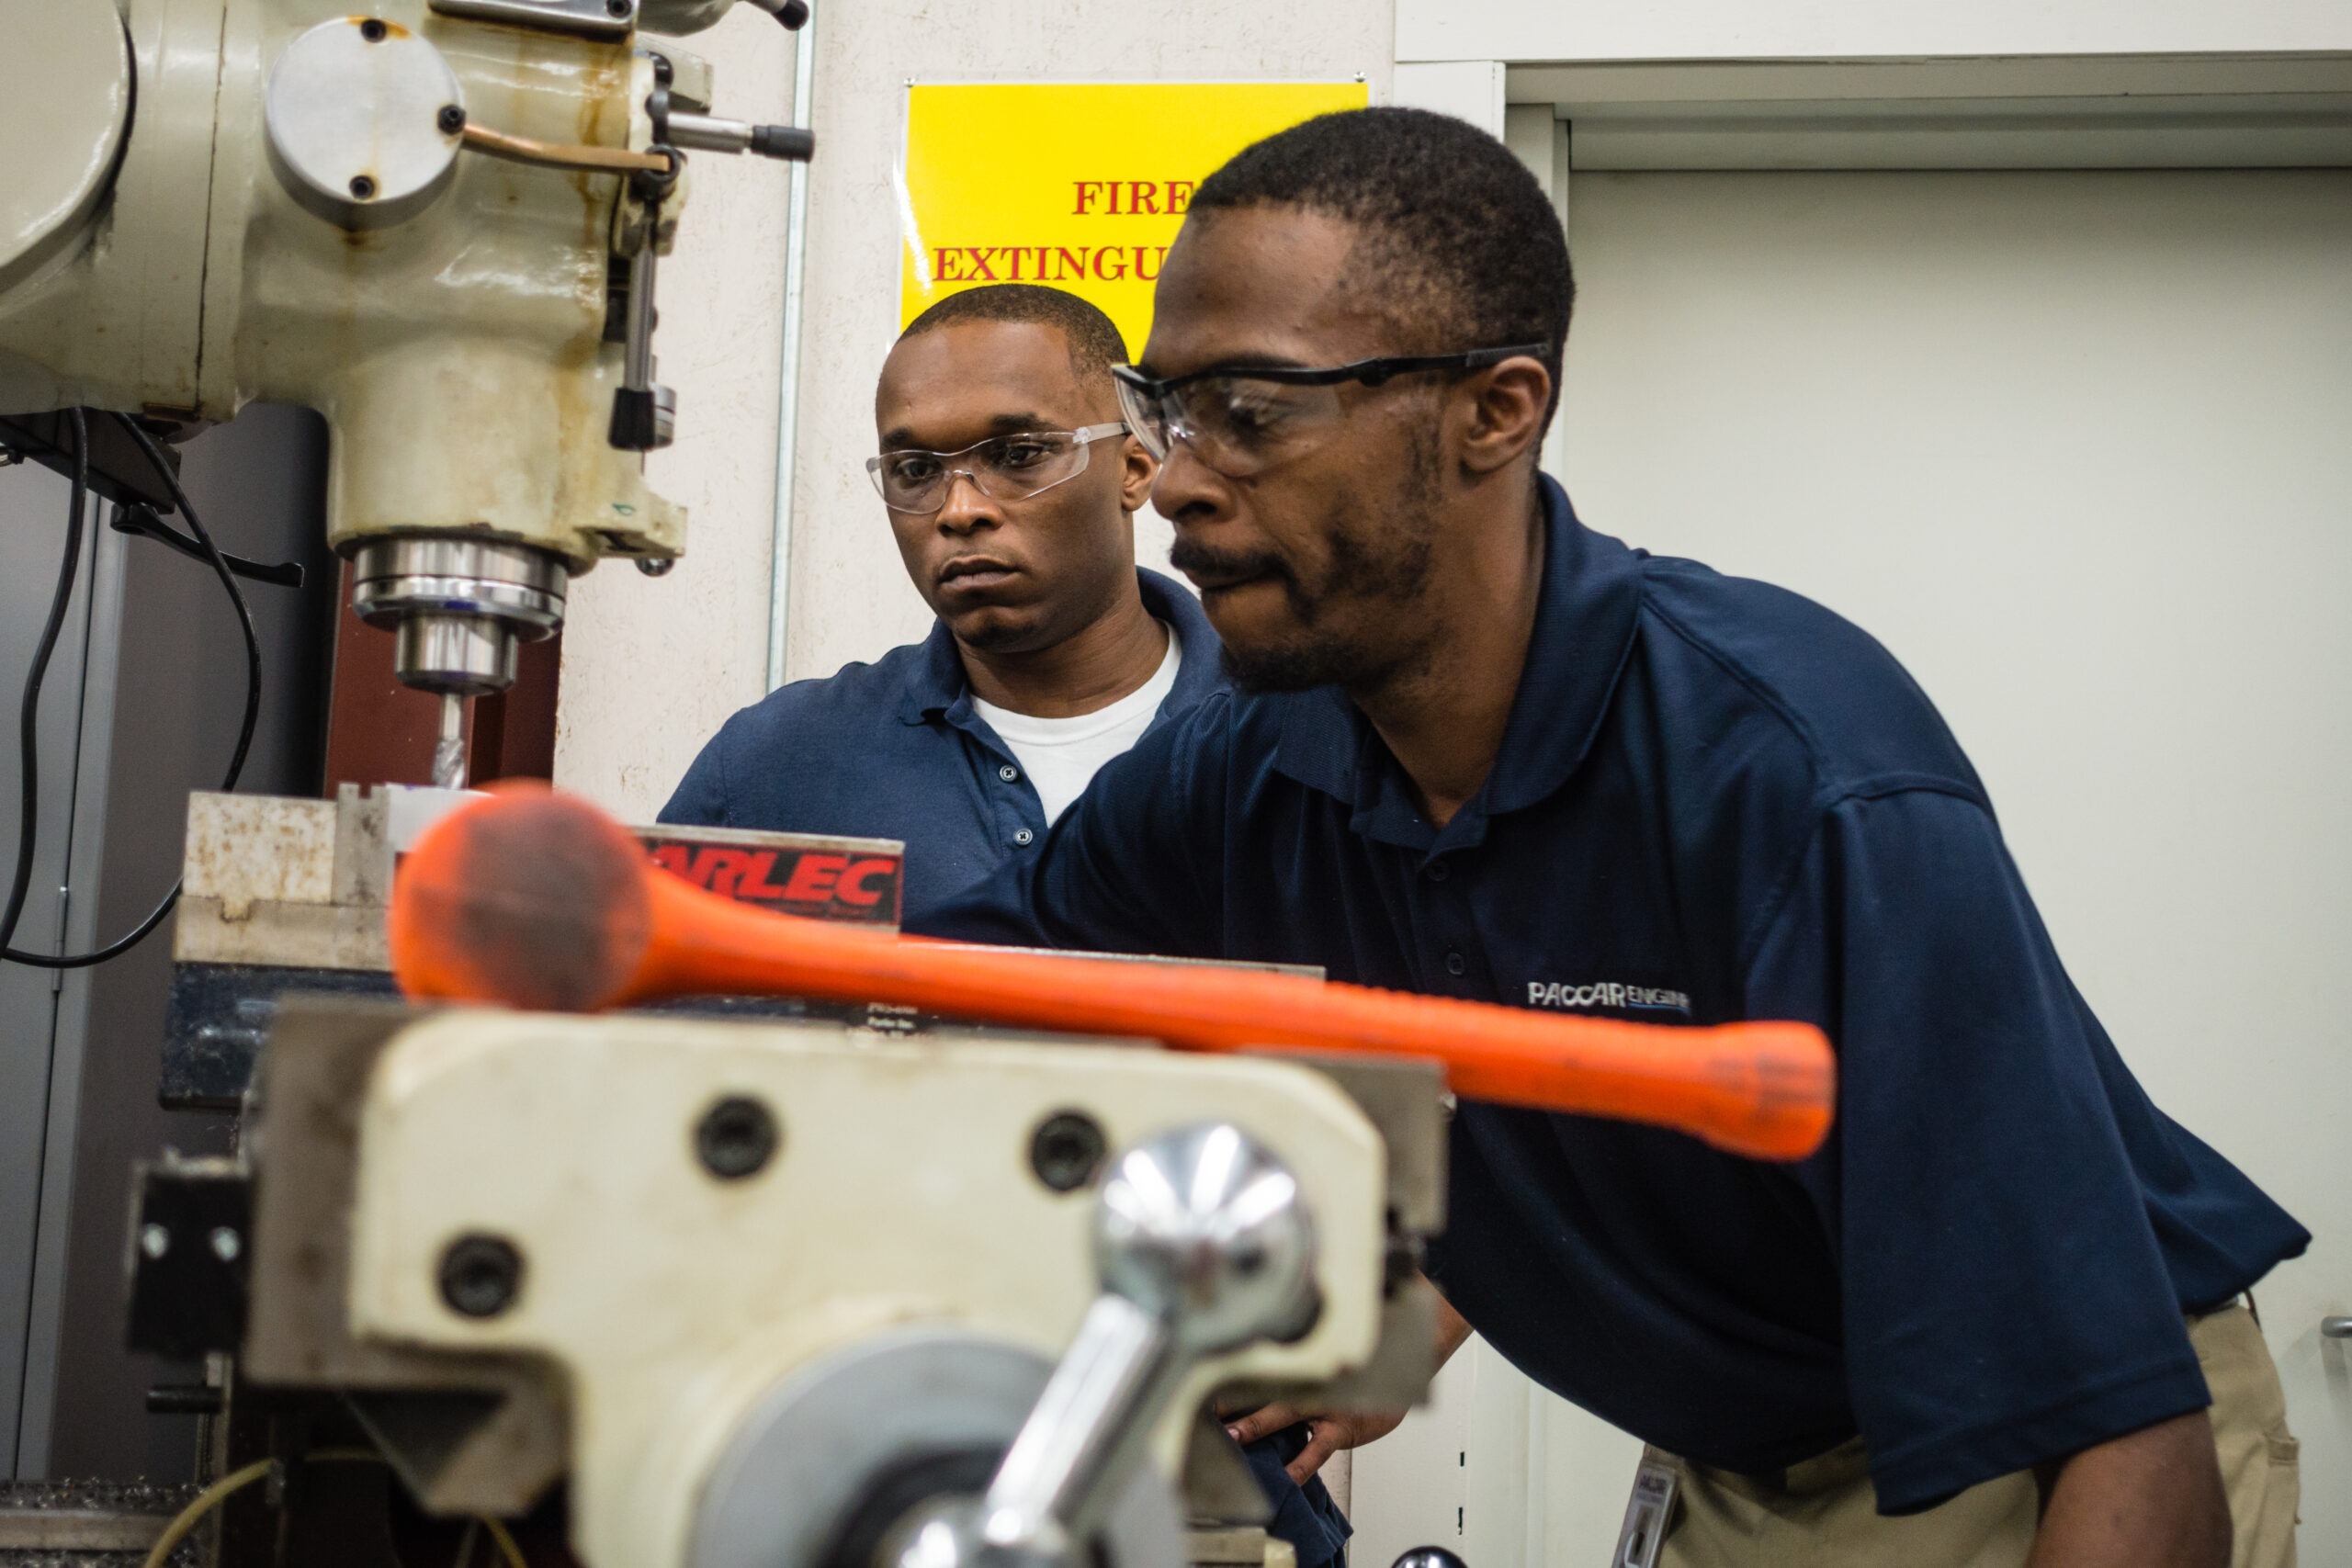 2 men in blue polos working in an industrial setting